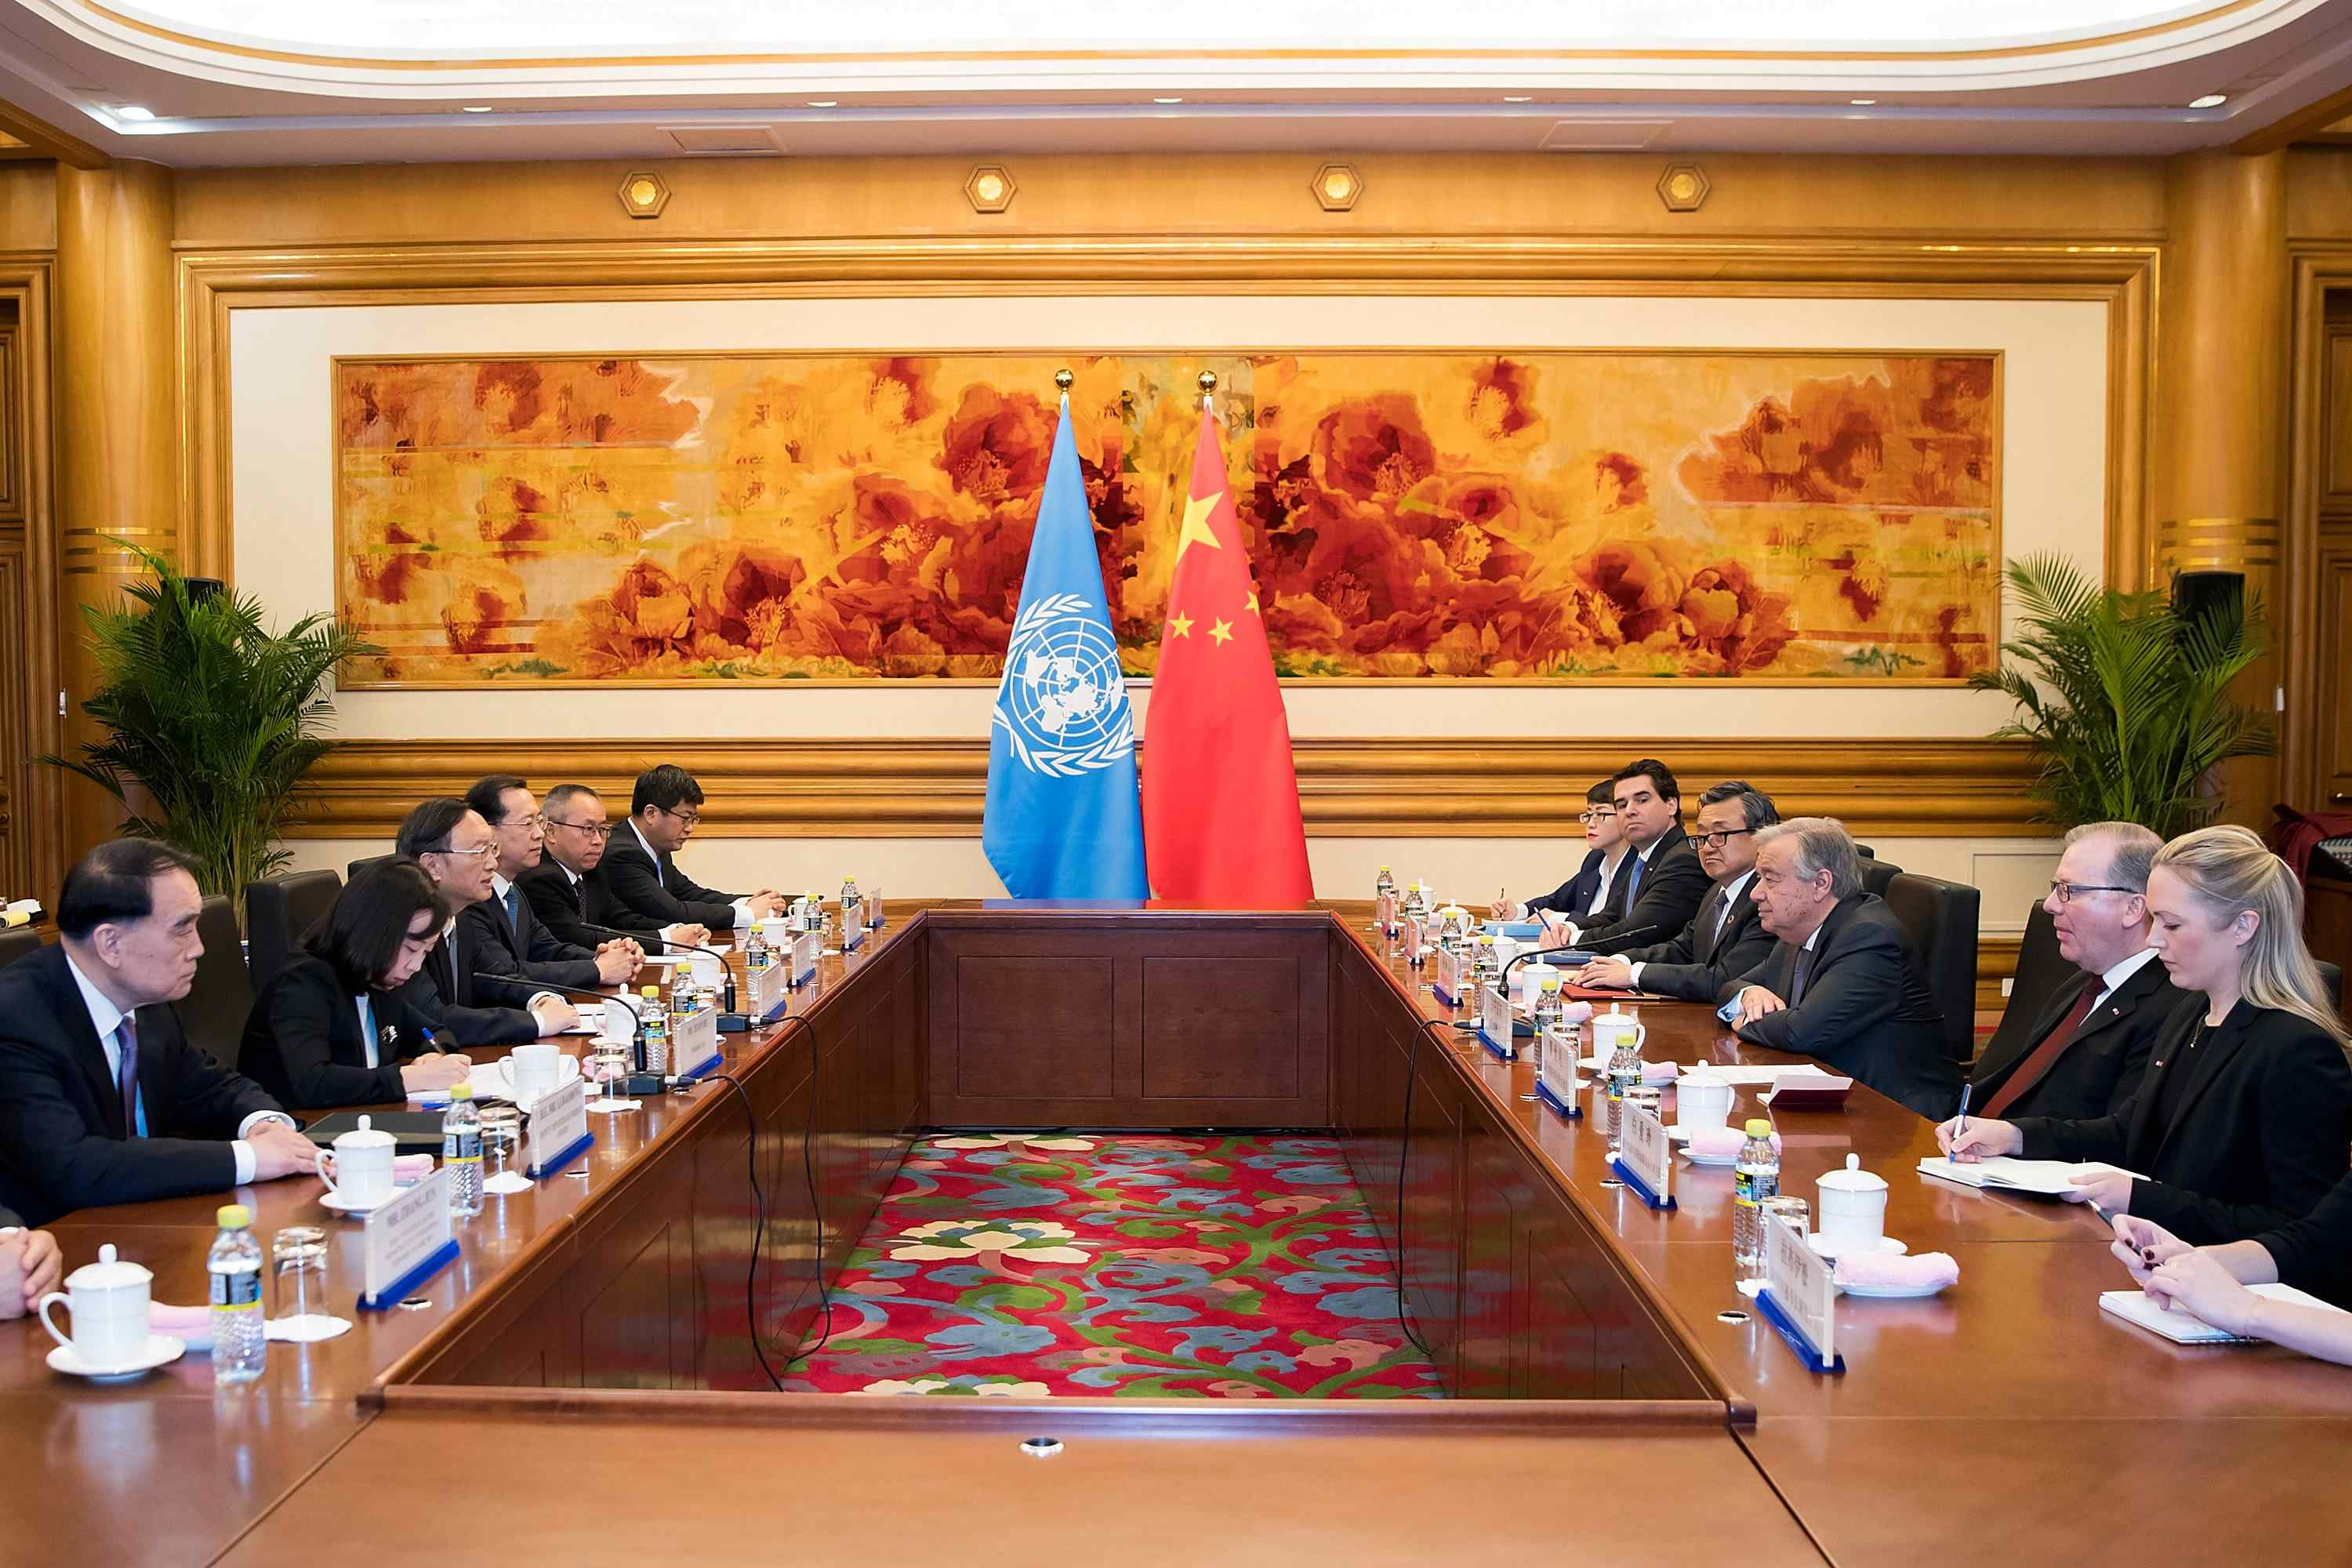 UN chief hails China's role in defending multilateralism